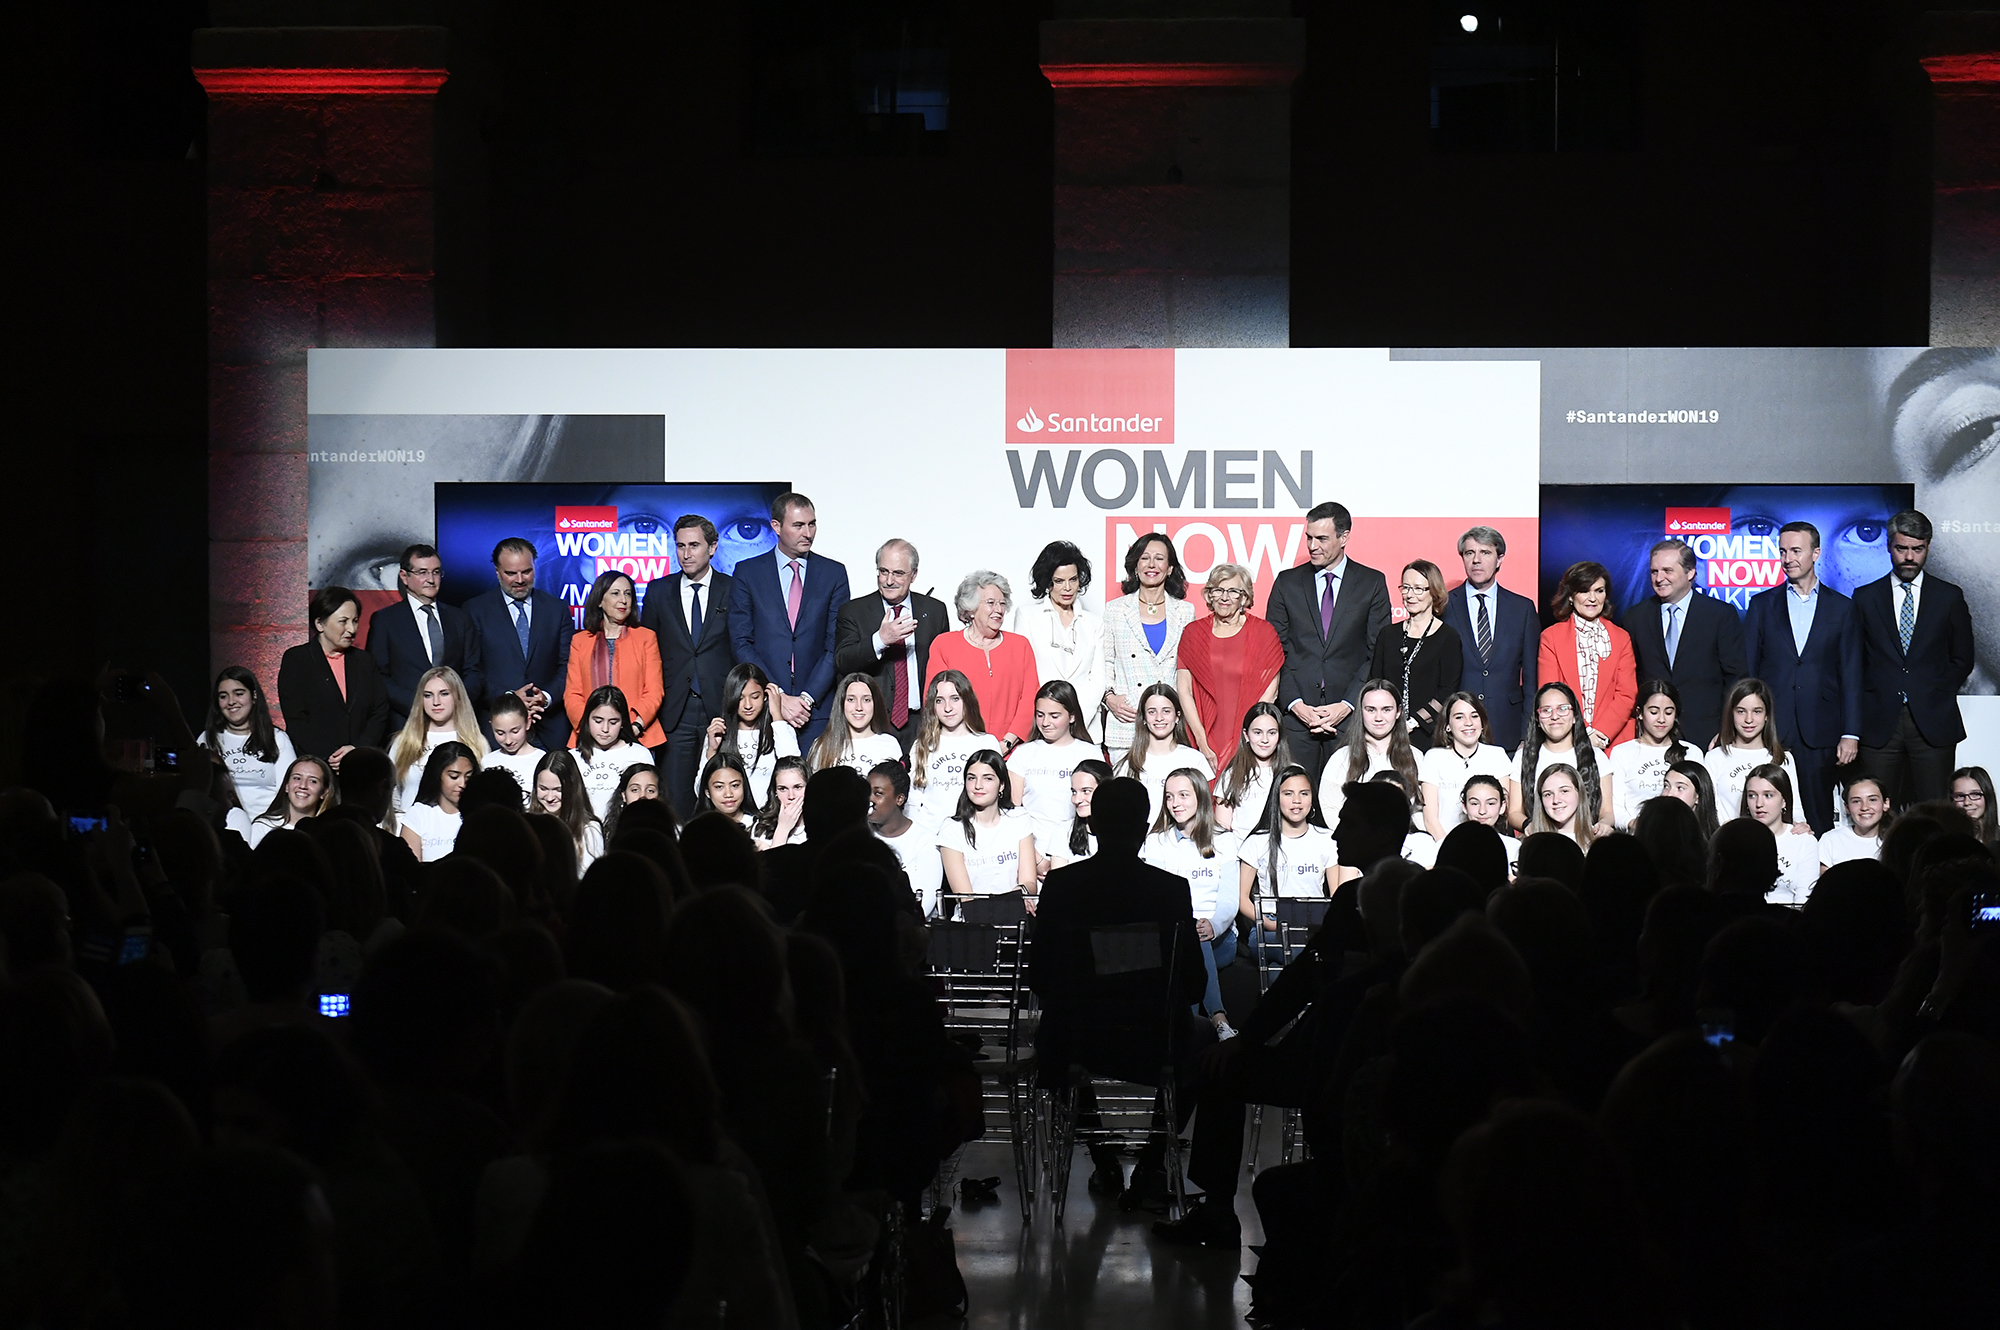 Inauguración del WomenNOW Summit